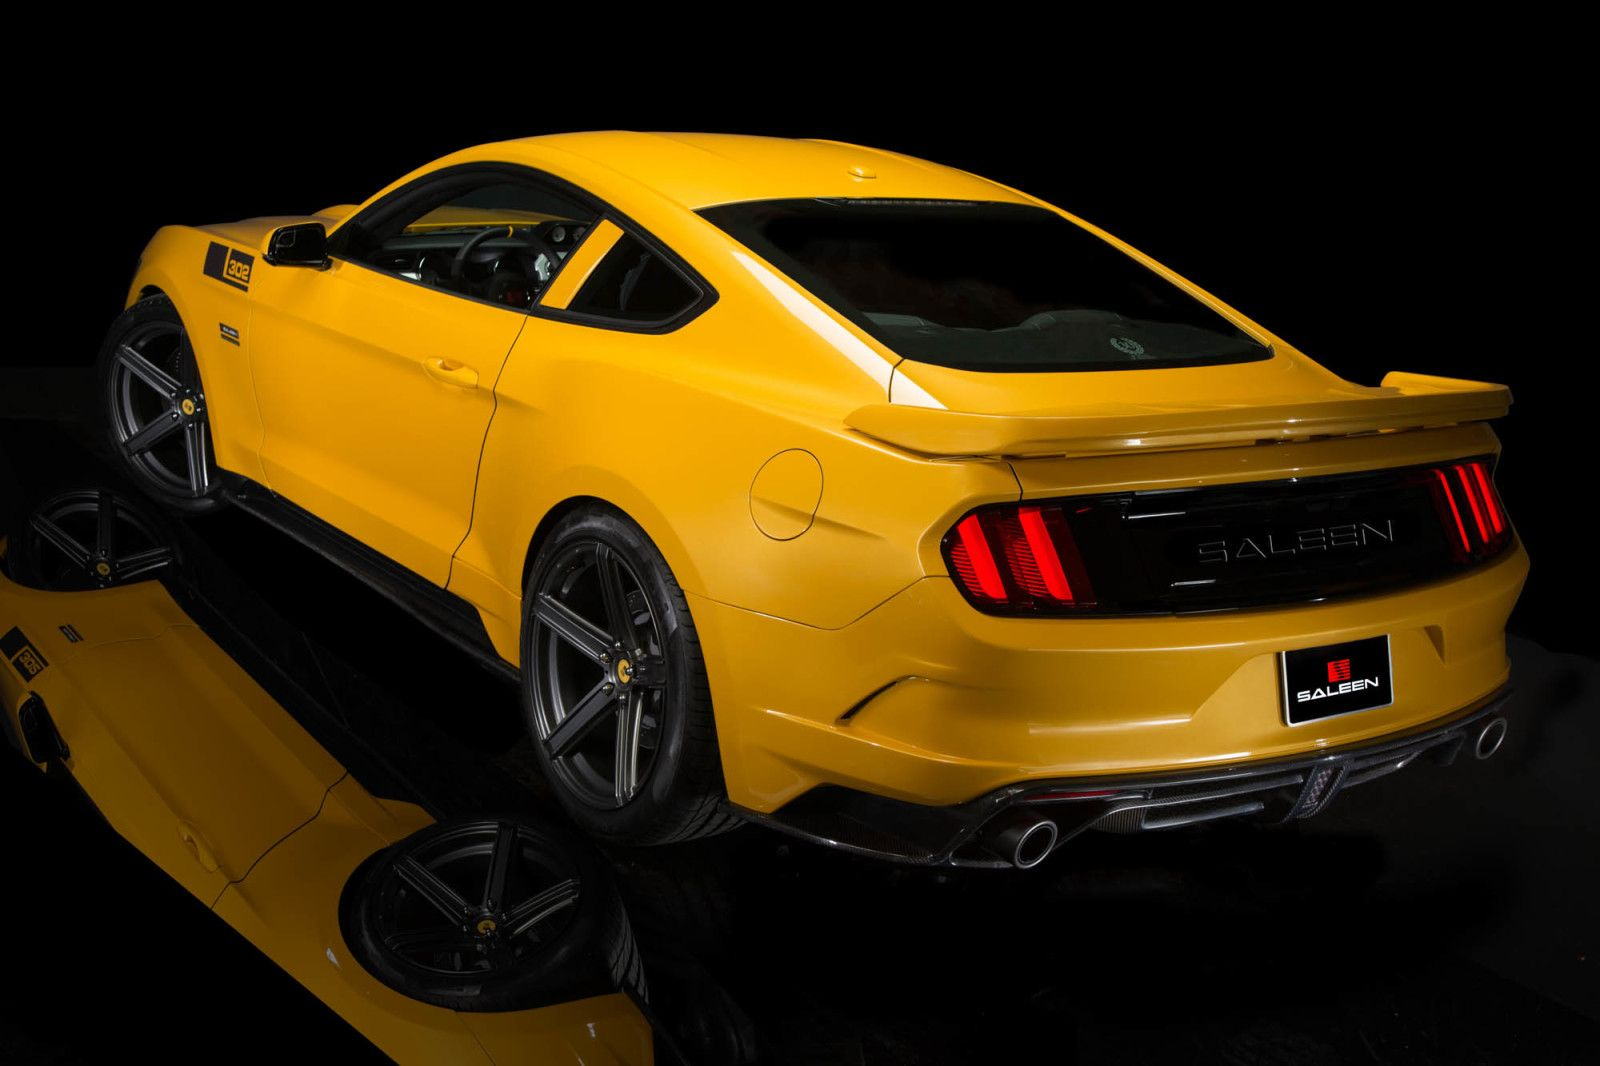 Saleen 302 Black Label Mustang Makes 730 Hp Costs 73k Saleen Mustang Ford Mustang Mustang